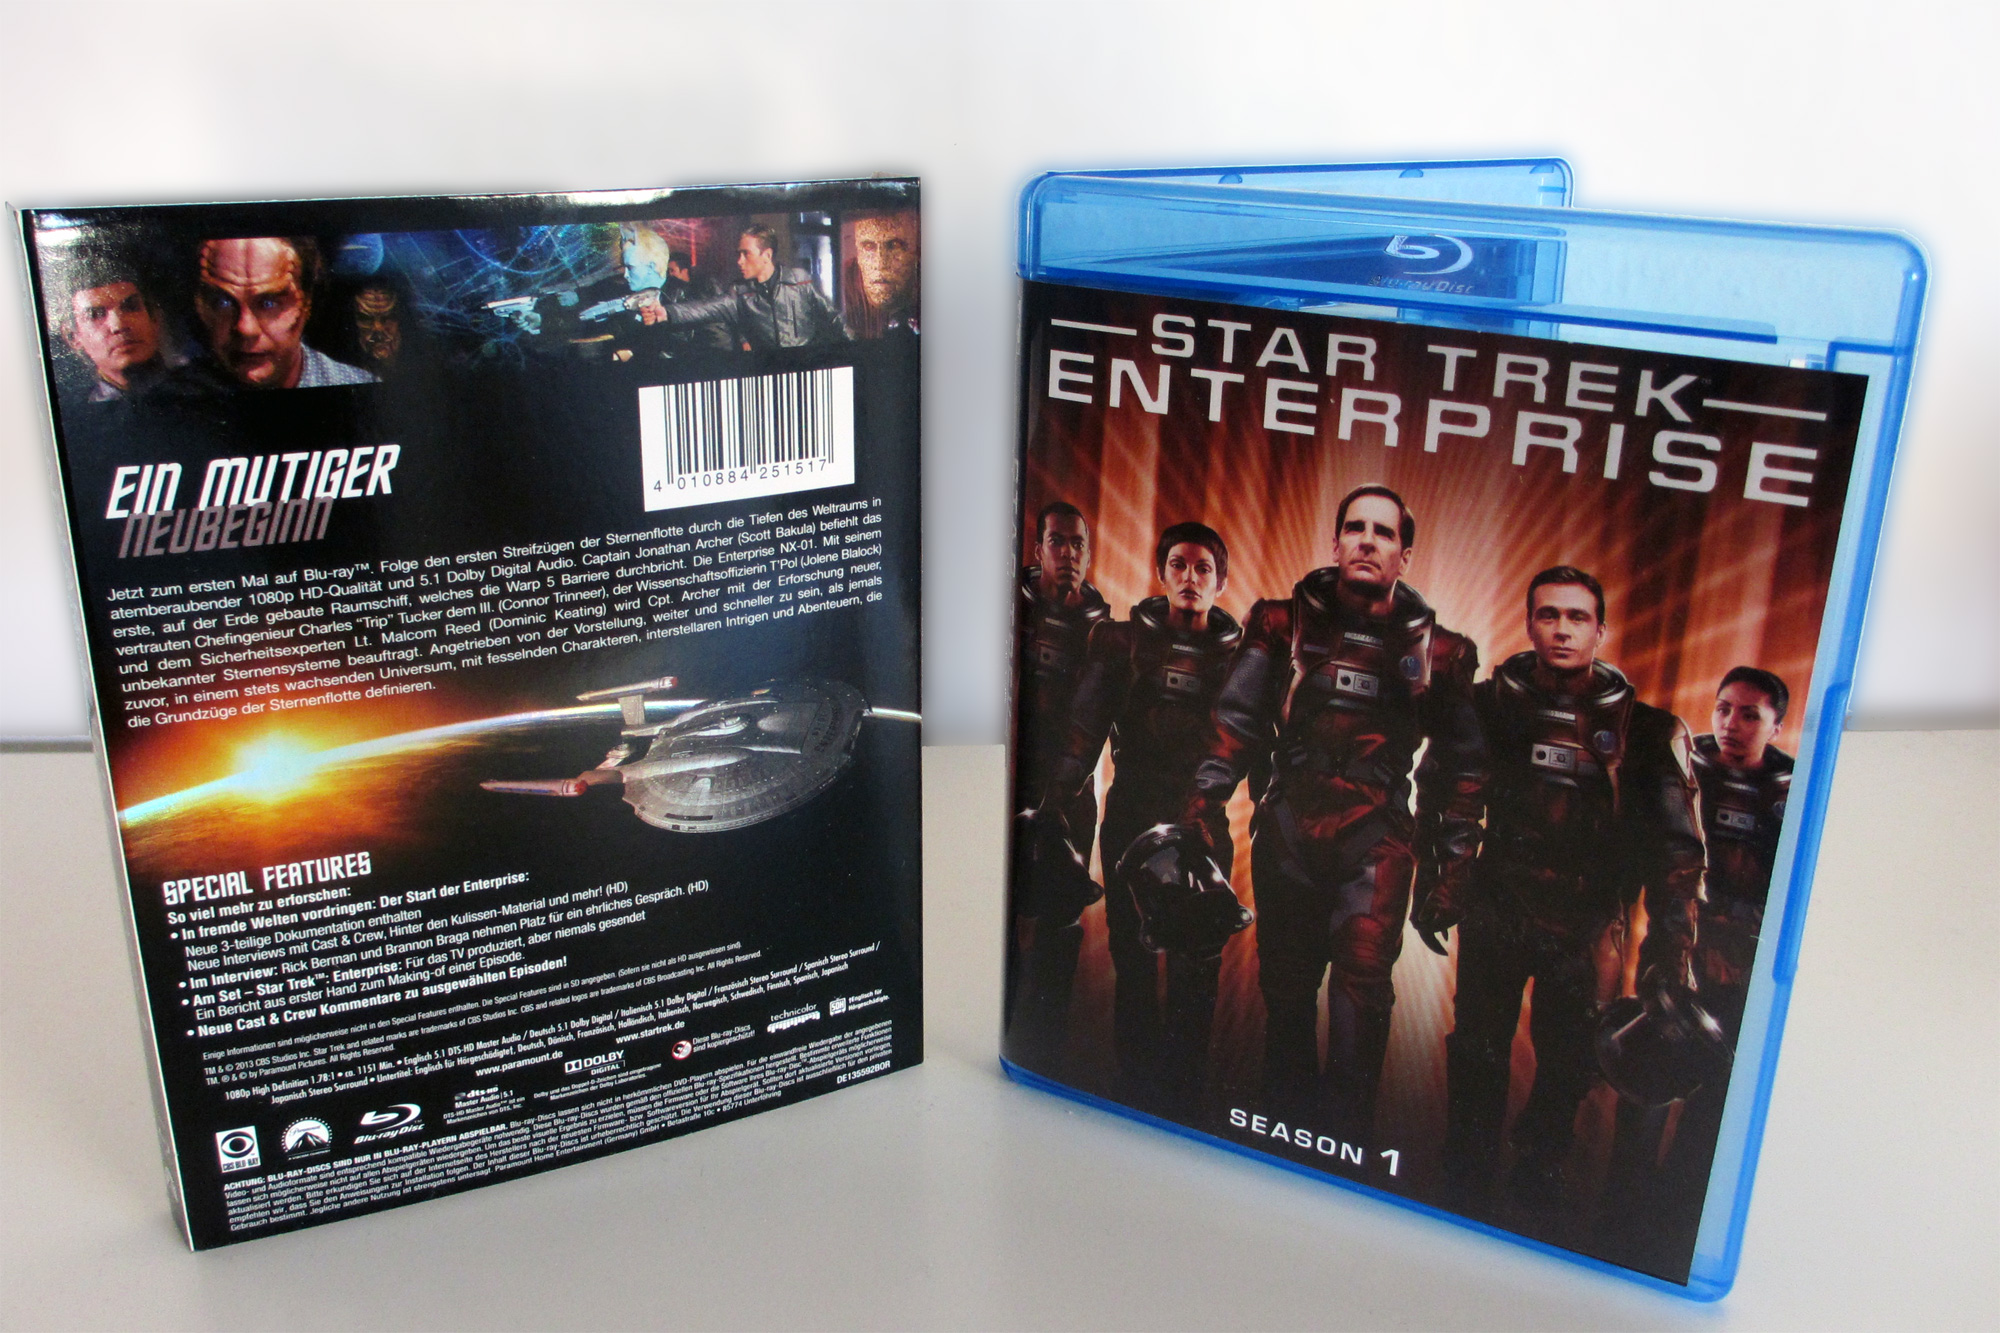 Star Trek Enterprise Season 1 Blu-ray Cover und Schuber (Quelle: StarTrek-HD.de)